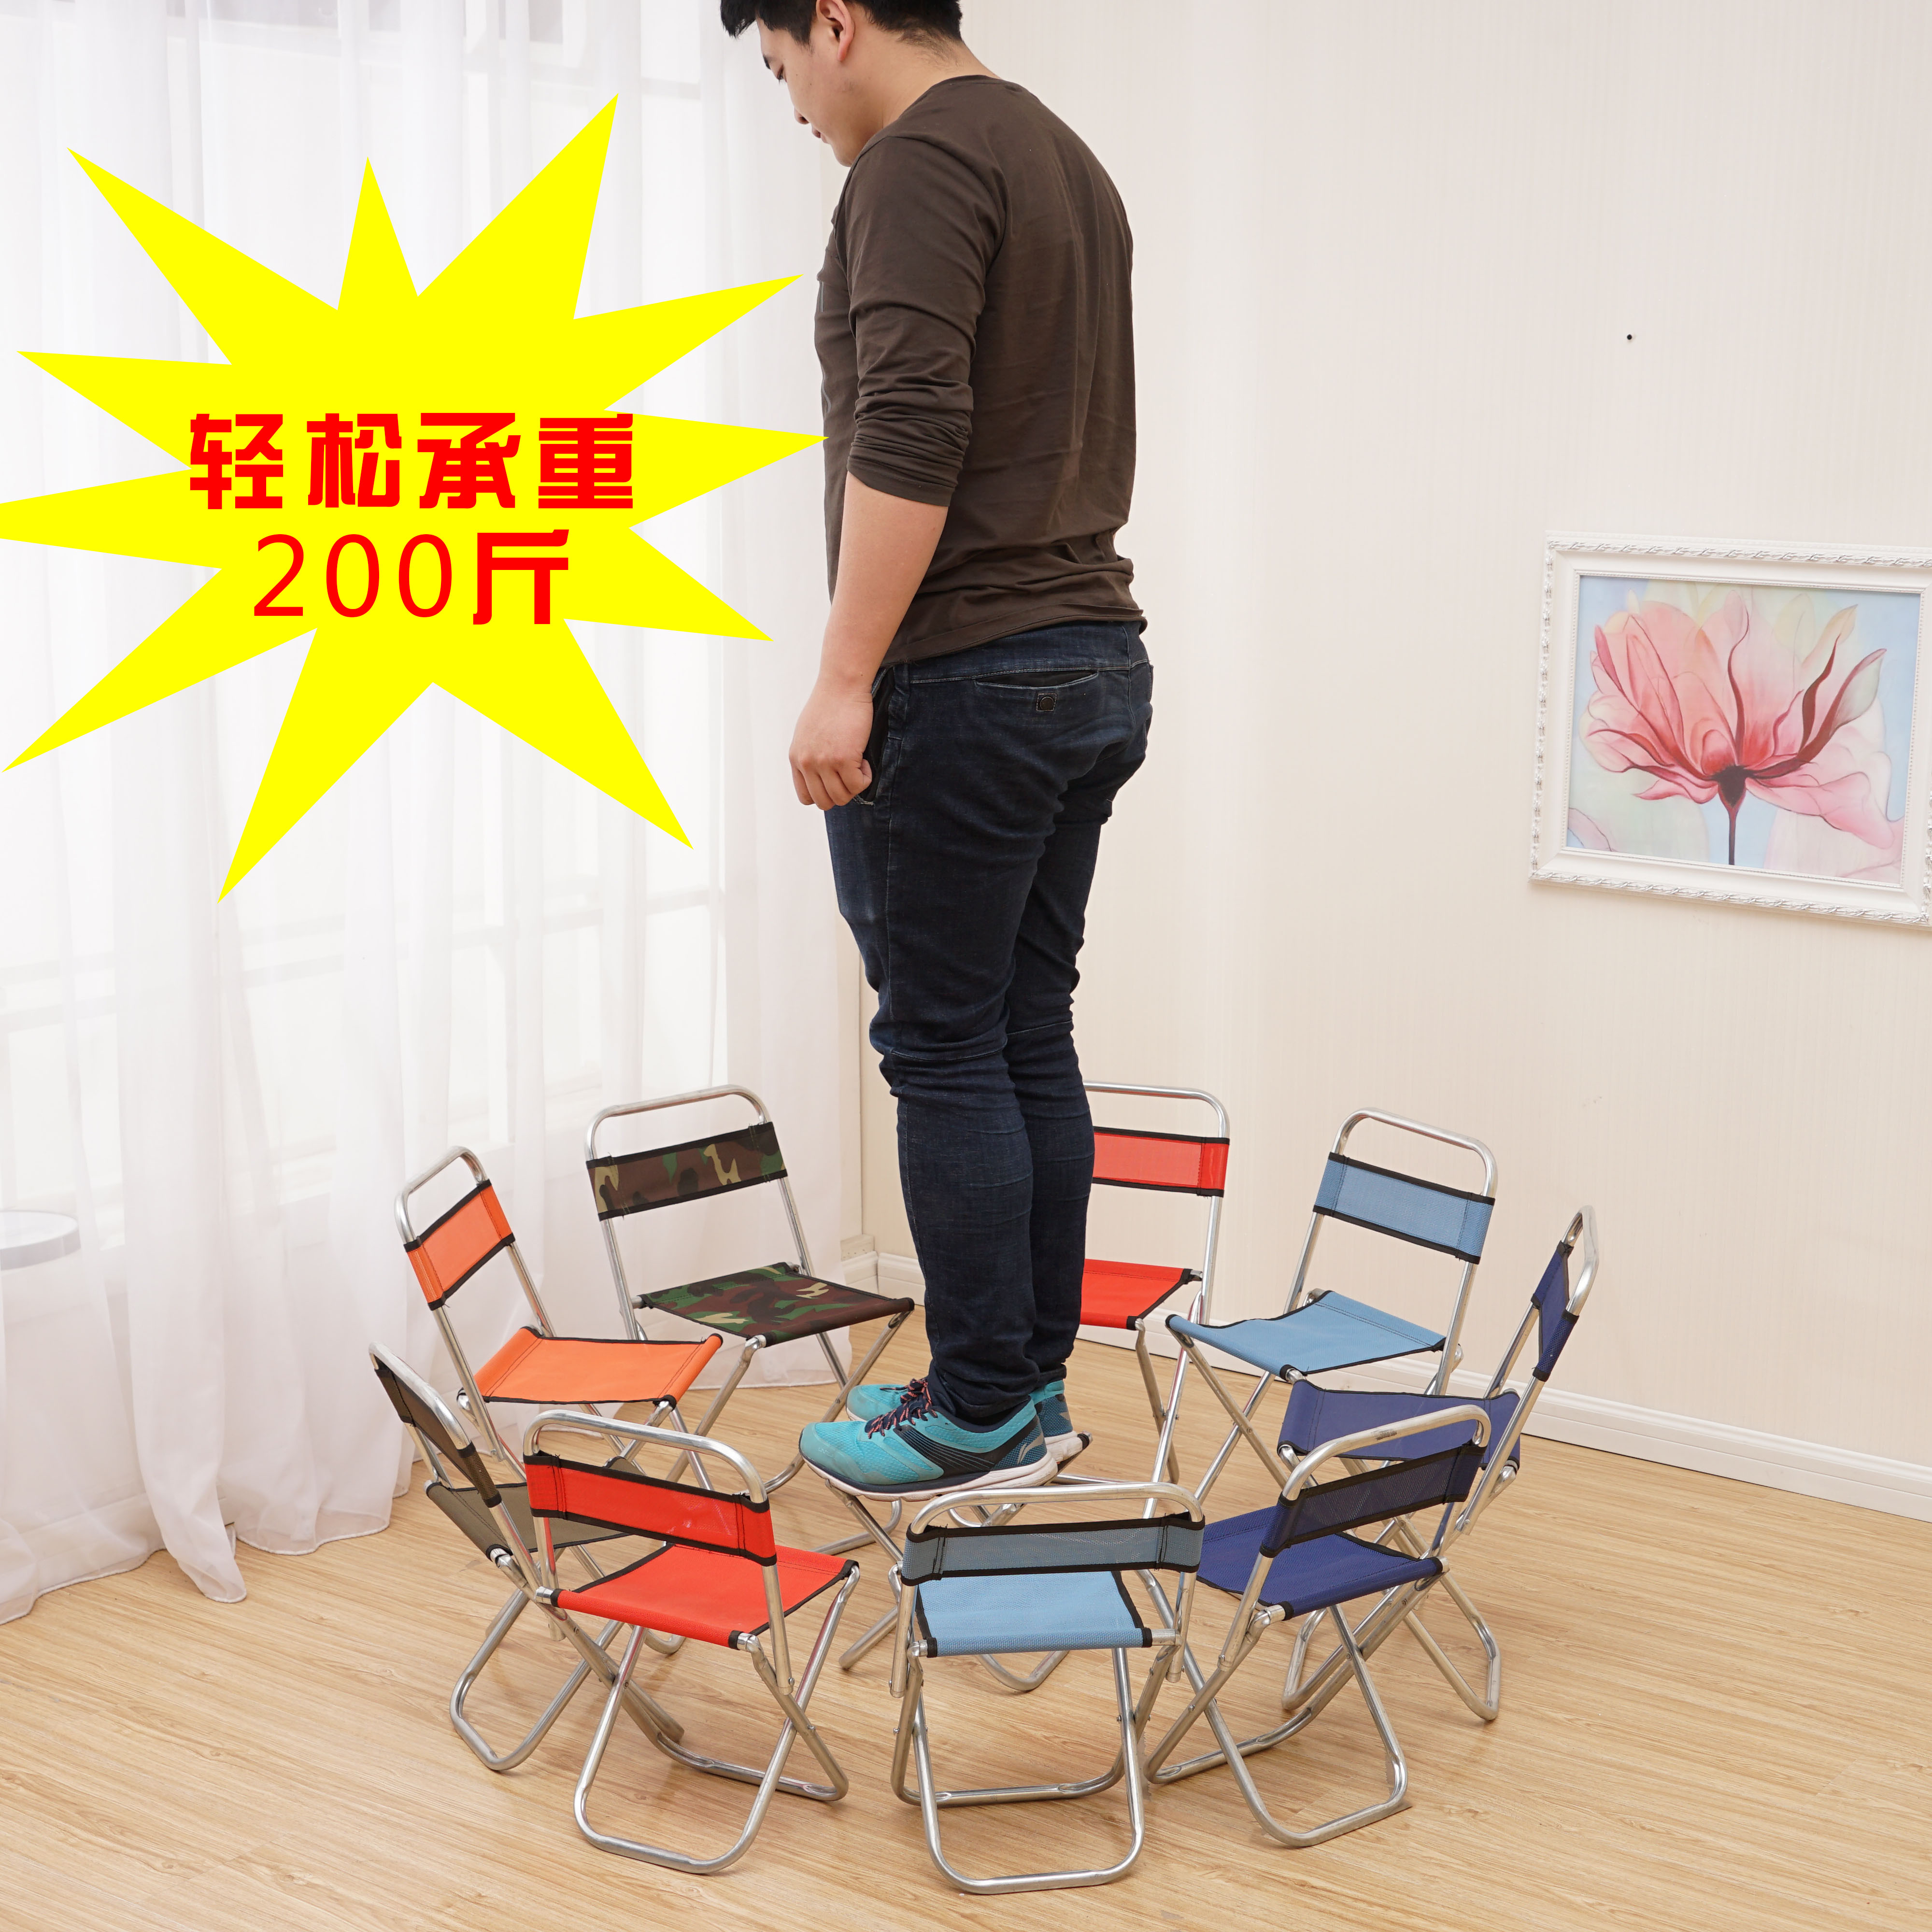 Spring Festival Train Stool Portable Subway Small Chair Back Outdoor  Folding Fishing Stool Sketch Barbecue High Bench